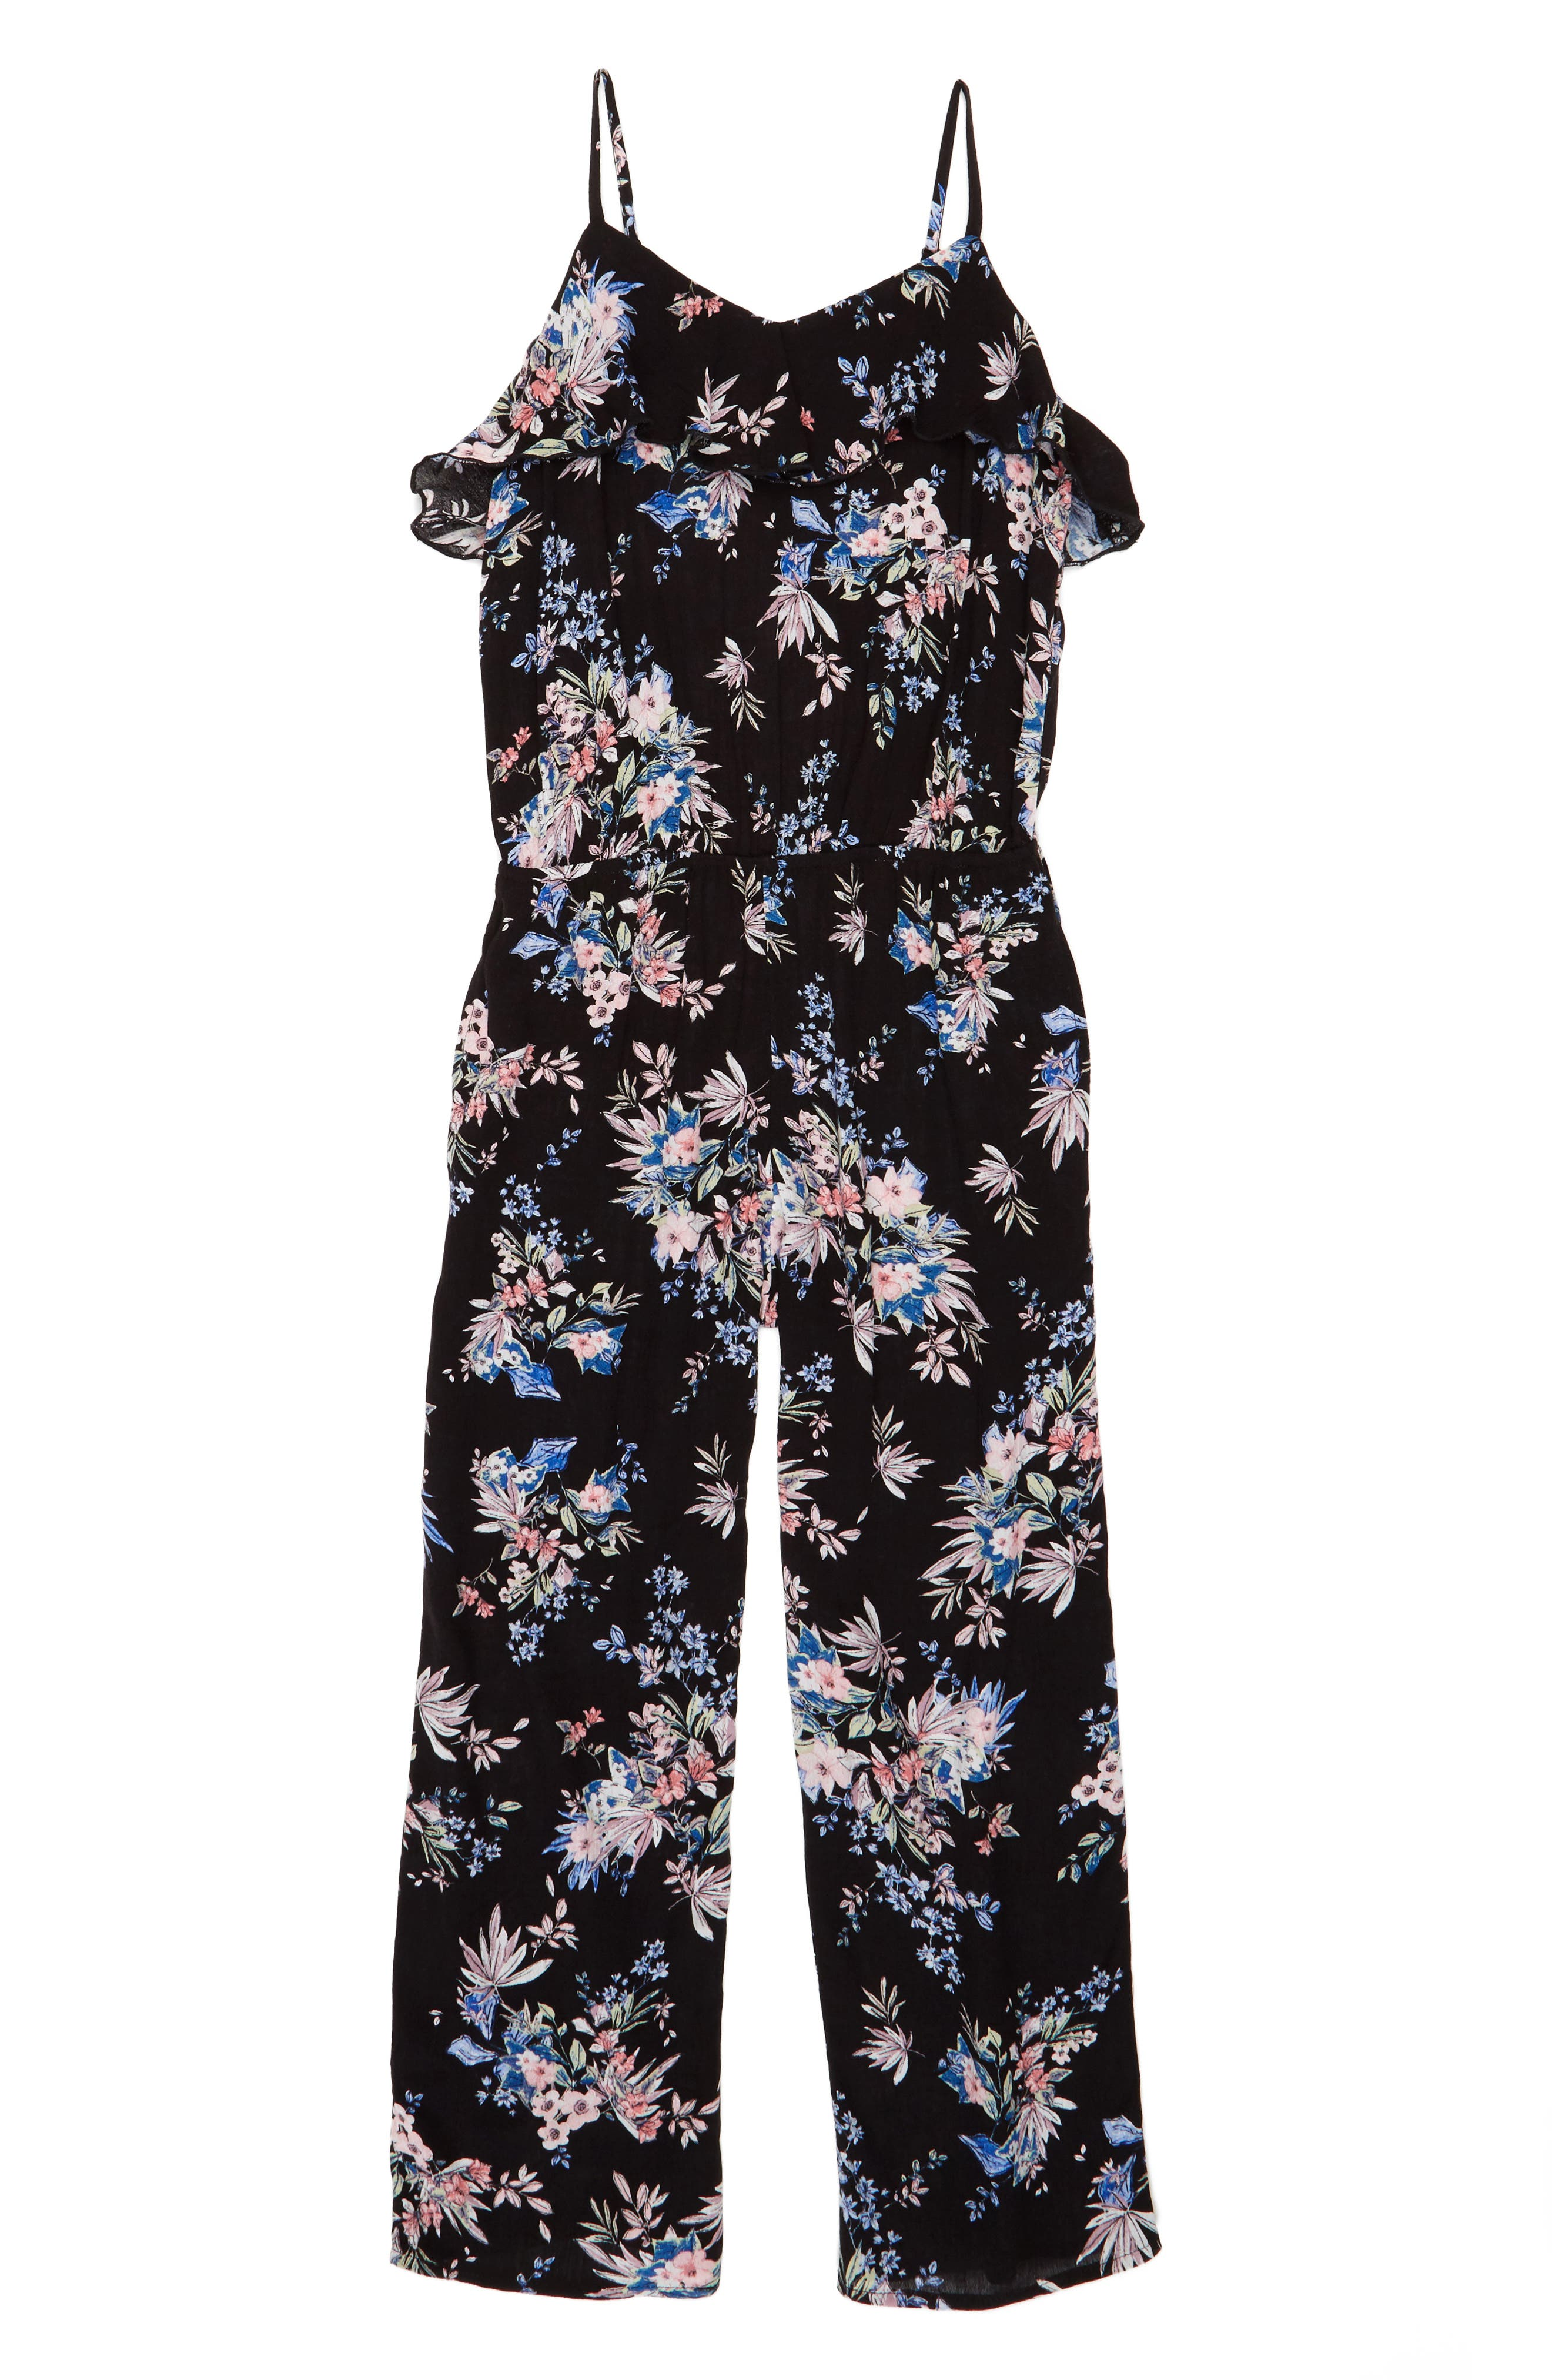 Alternate Image 1 Selected - Mia Chica Floral Print Jumpsuit (Big Girls)